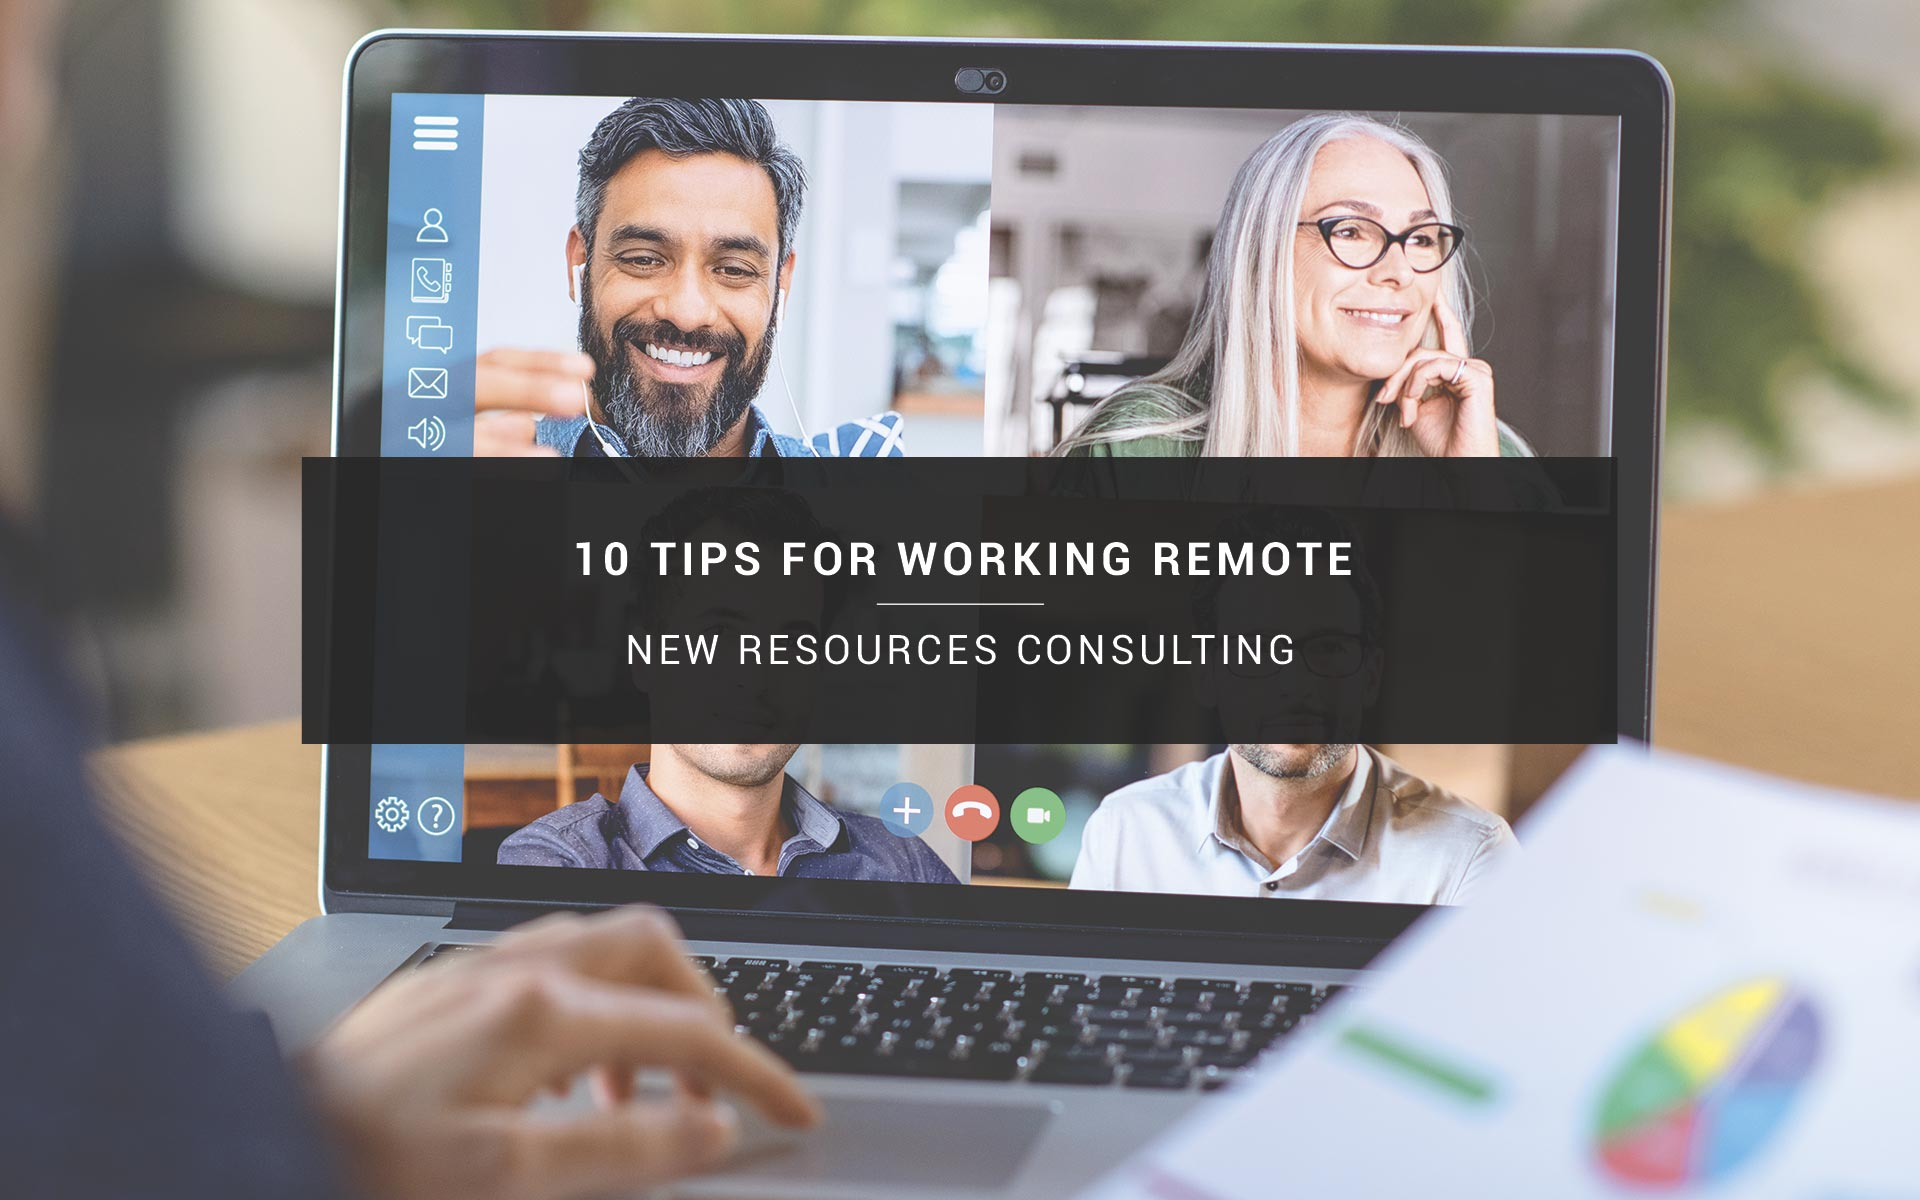 10 Tips for Working Remote | Webinar: Virtual Project Management | PeopleSoft Managed Services | Oracle | Managed Services | Tech Support | New Resources Consulting